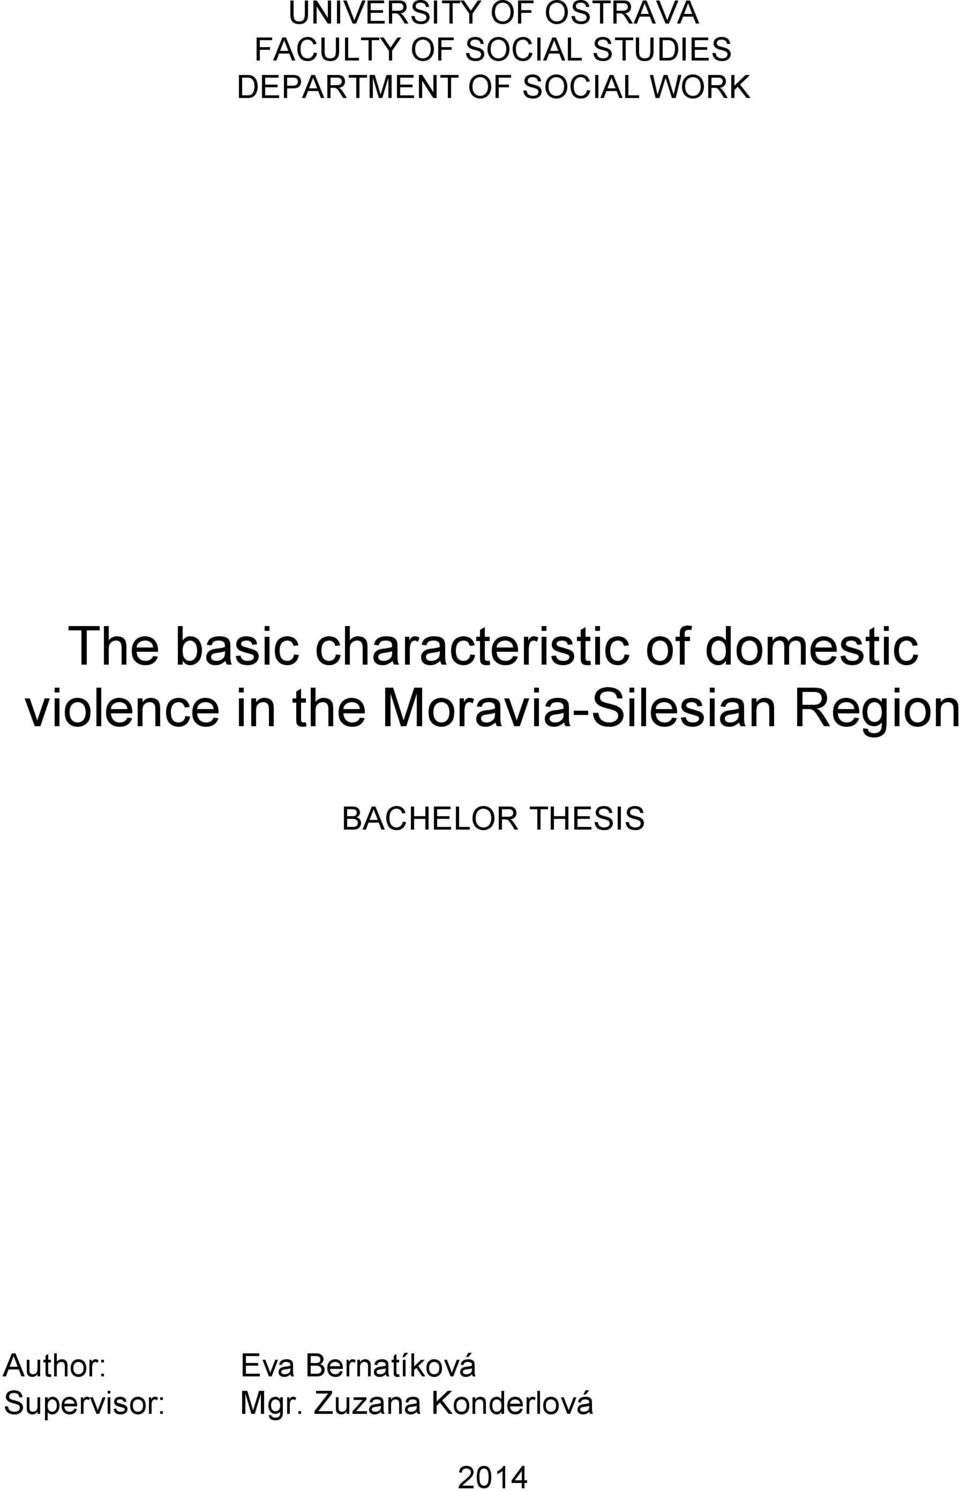 domestic violence in the Moravia-Silesian Region BACHELOR